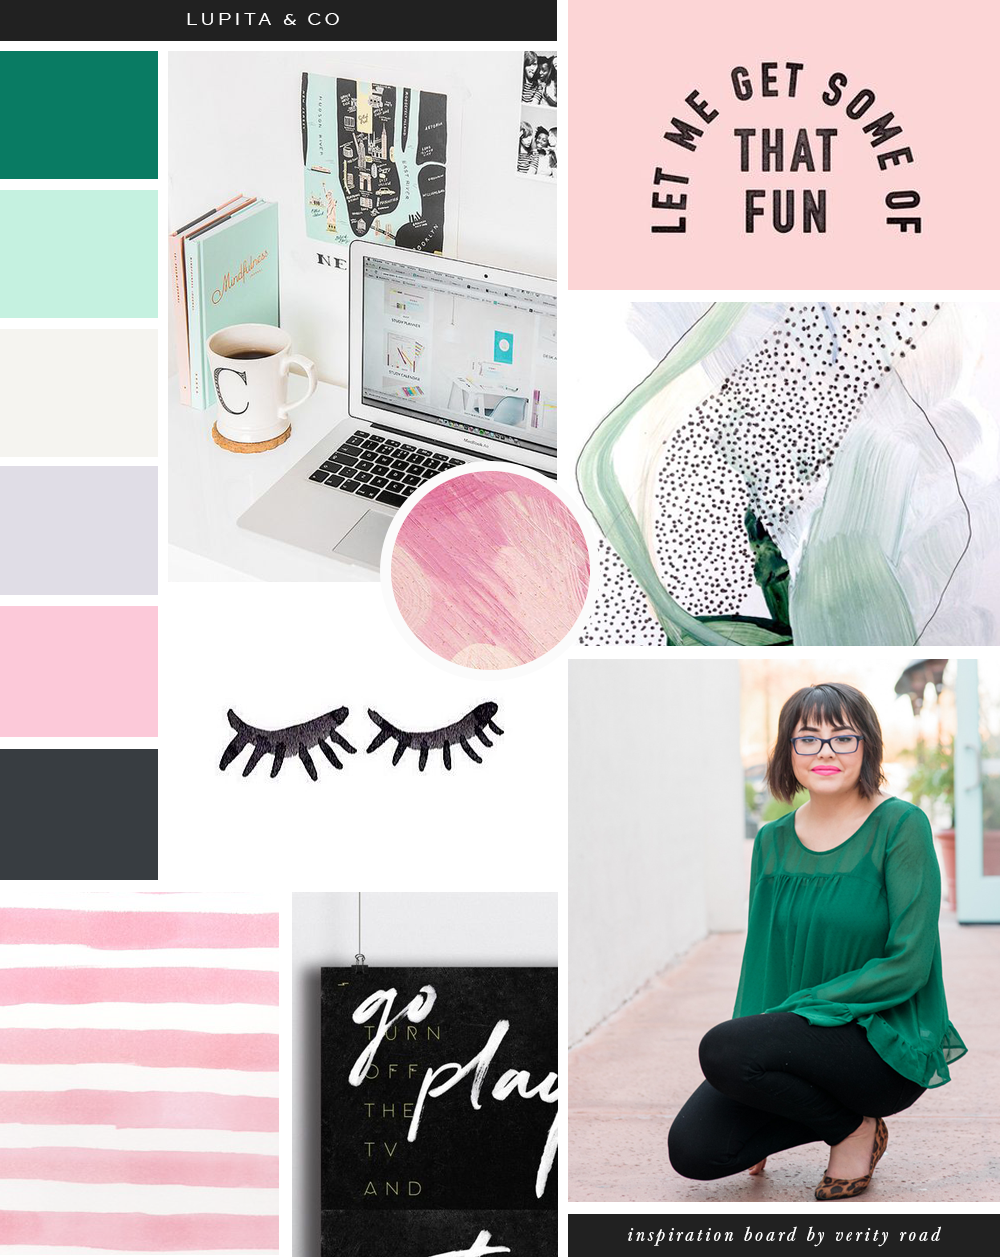 Mood board for lupita & co, online business management and strategy, virtual assistants, luxury feminine branding and web design for female entrepreneurs, feminine business, feminine branding. Inspiration board, typography, color palette, photoshoot, brand photoshoot, headshot. See more for brand board, social media branding.